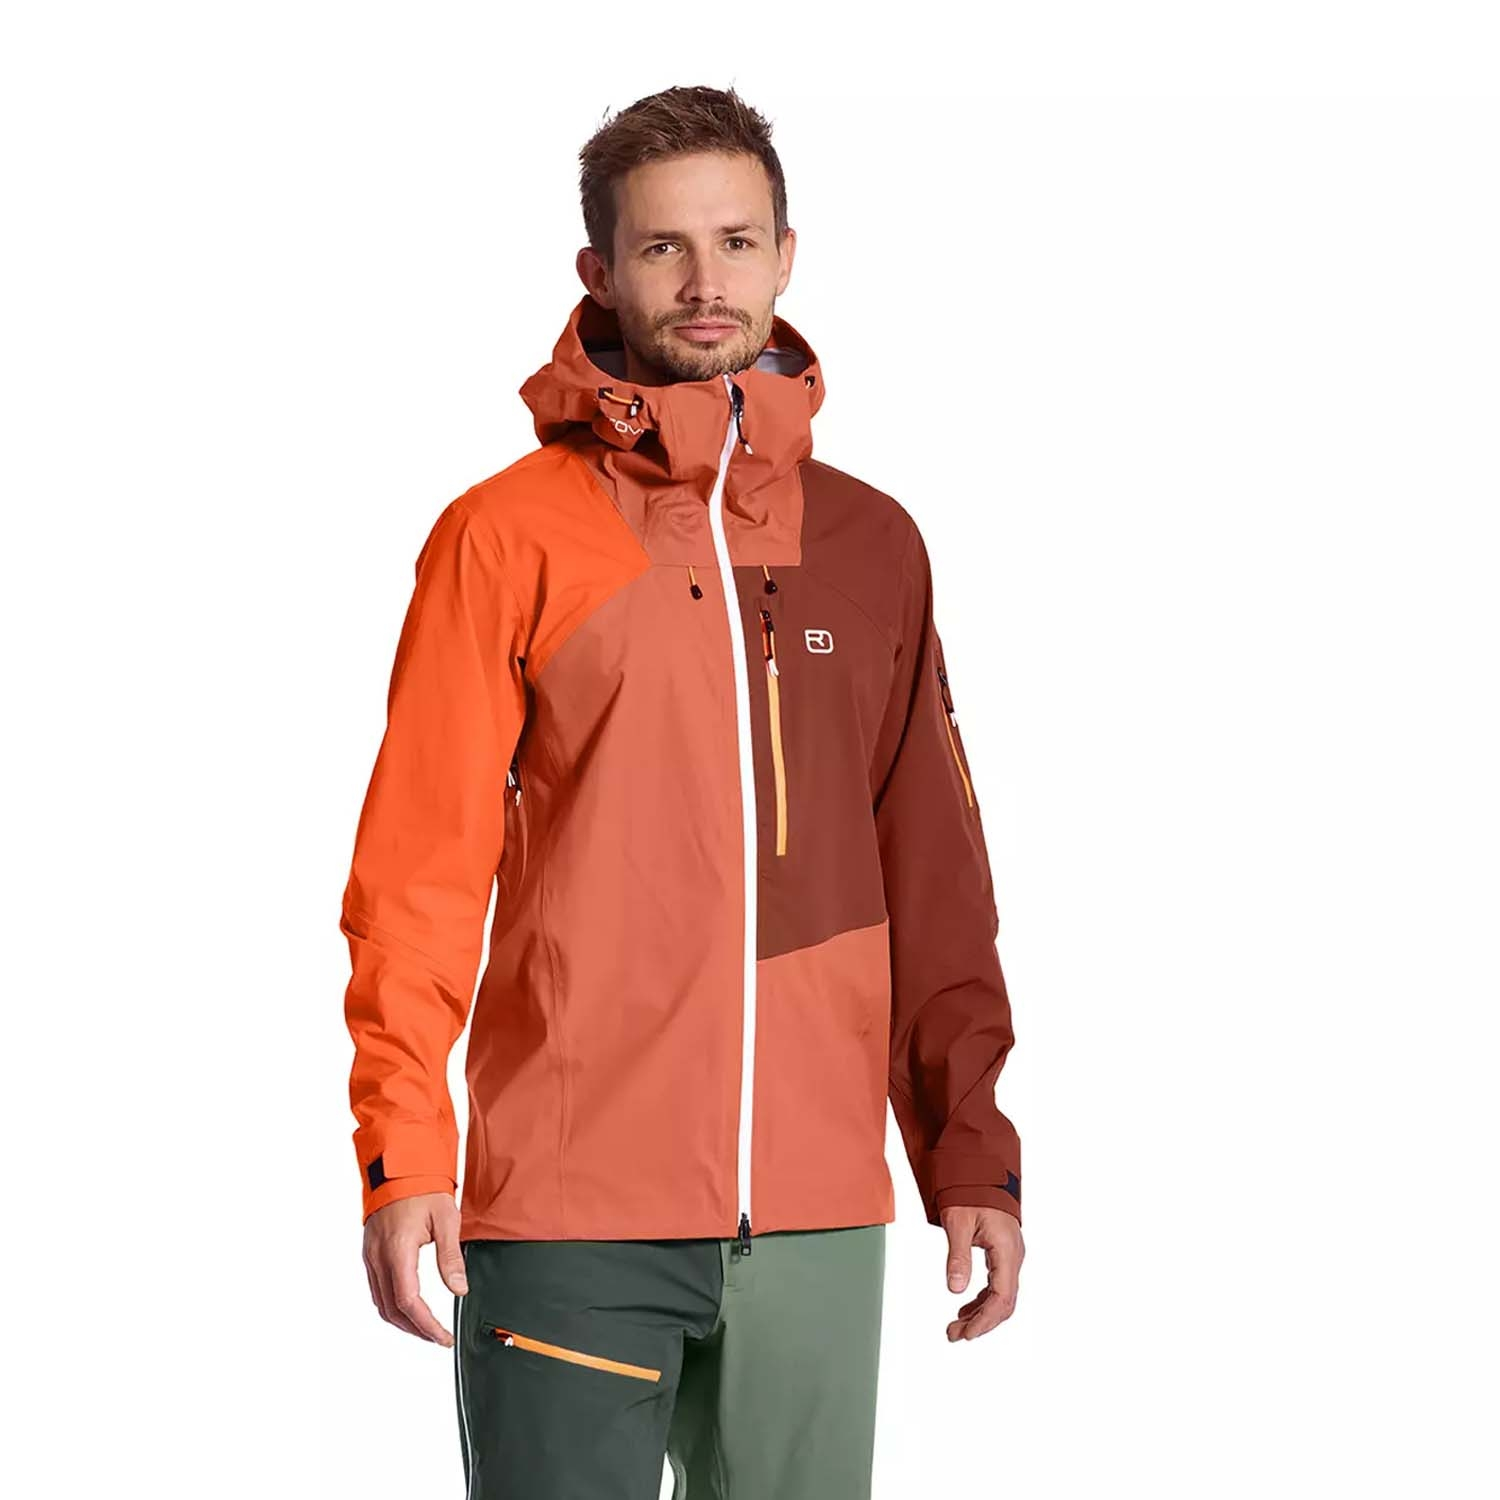 Ortovox Ortler 3L Jacket Desert Orange 2021